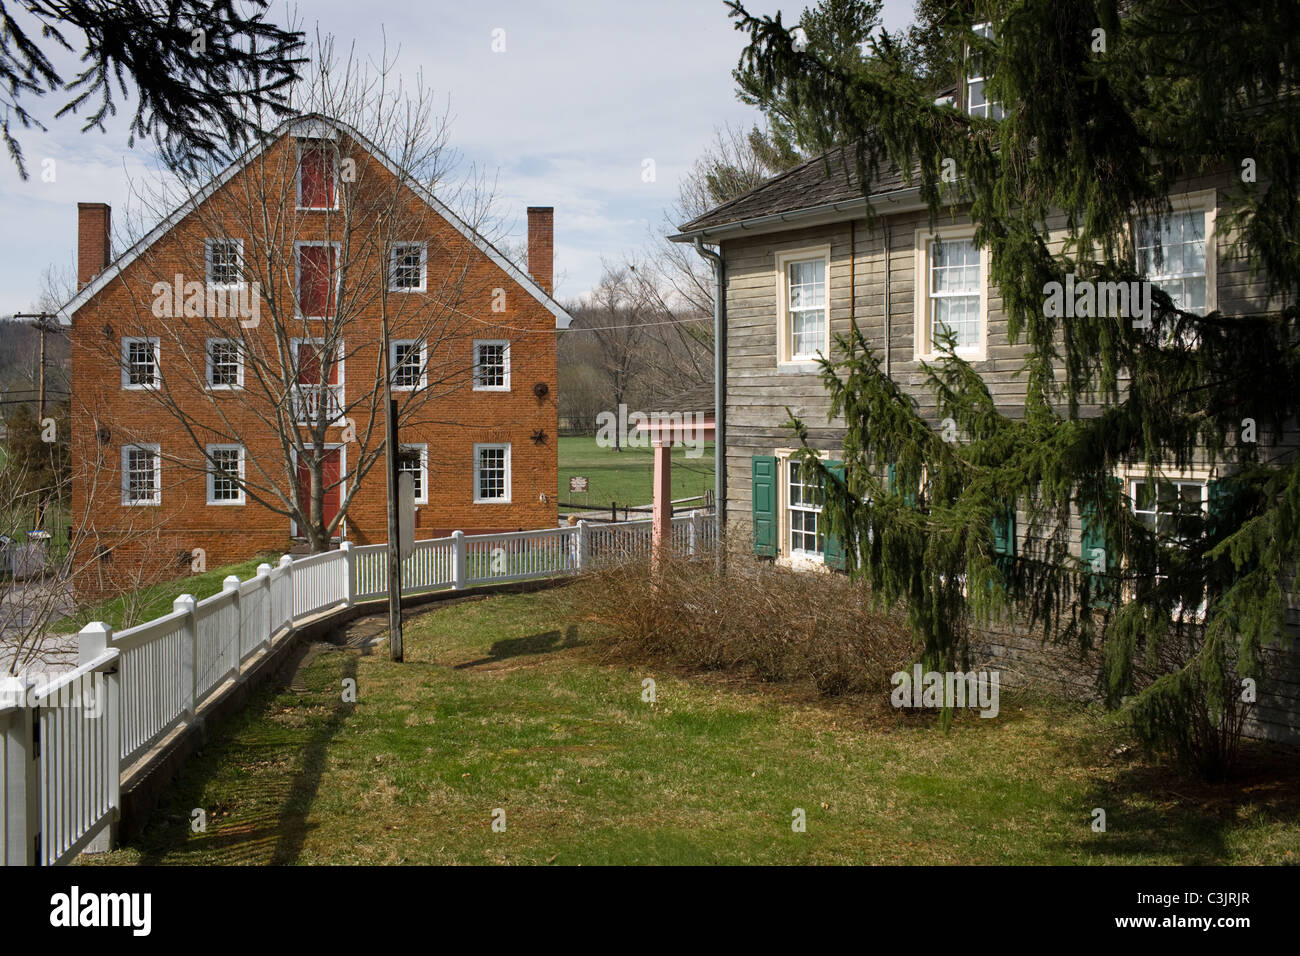 Union Mills, 1797, Carroll County, Maryland, where Confederate Troops stayed on their way to Gettysburg - Stock Image